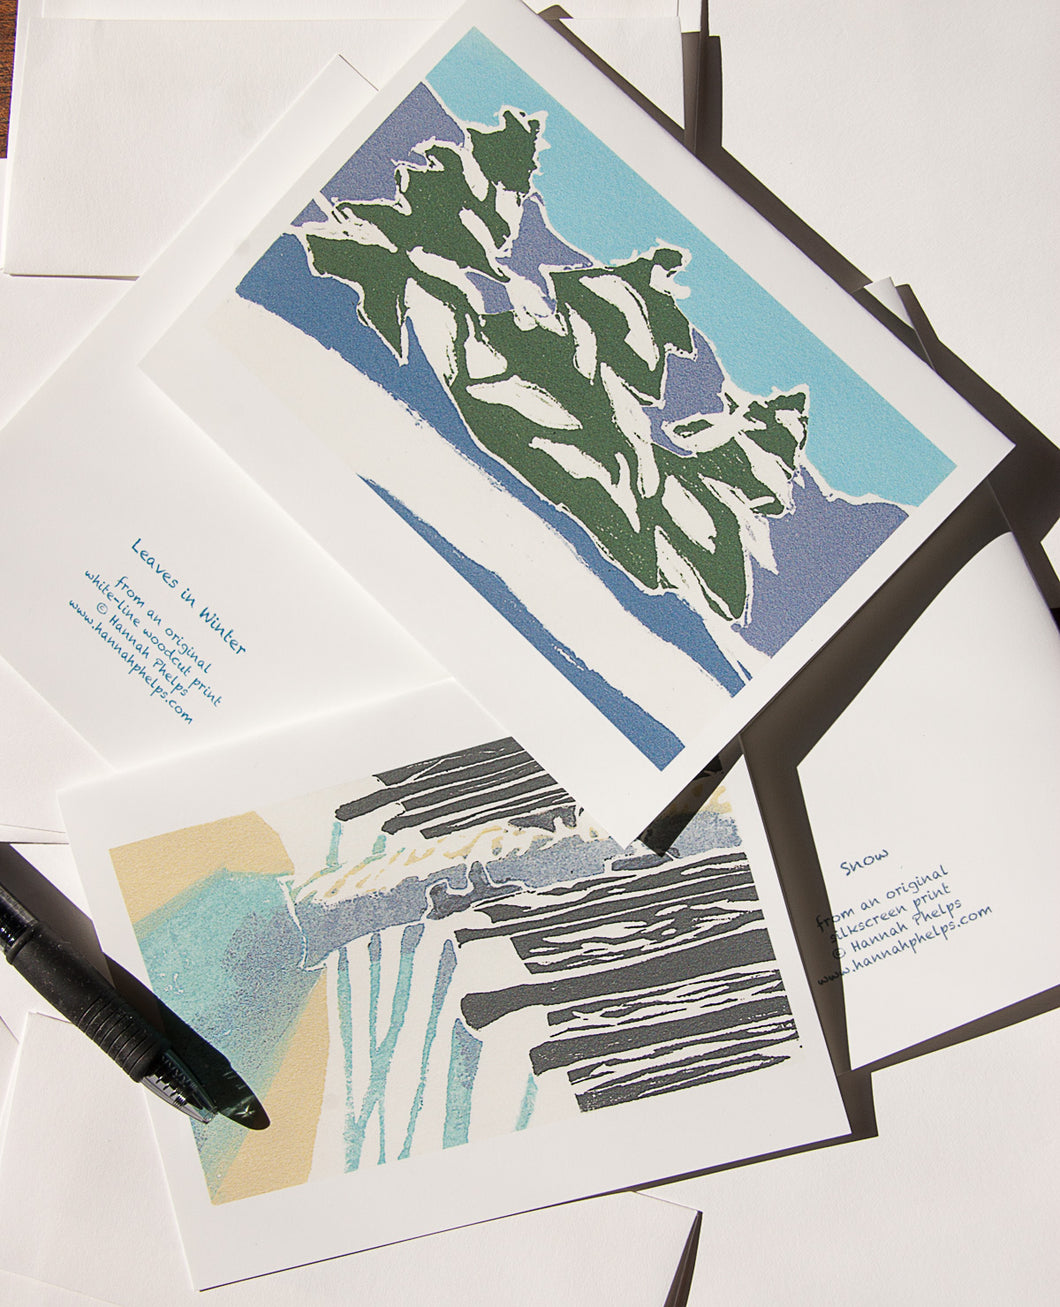 collection of 8 notecards and envelopes featuring winter block prints by New England artist Hannah Phelps